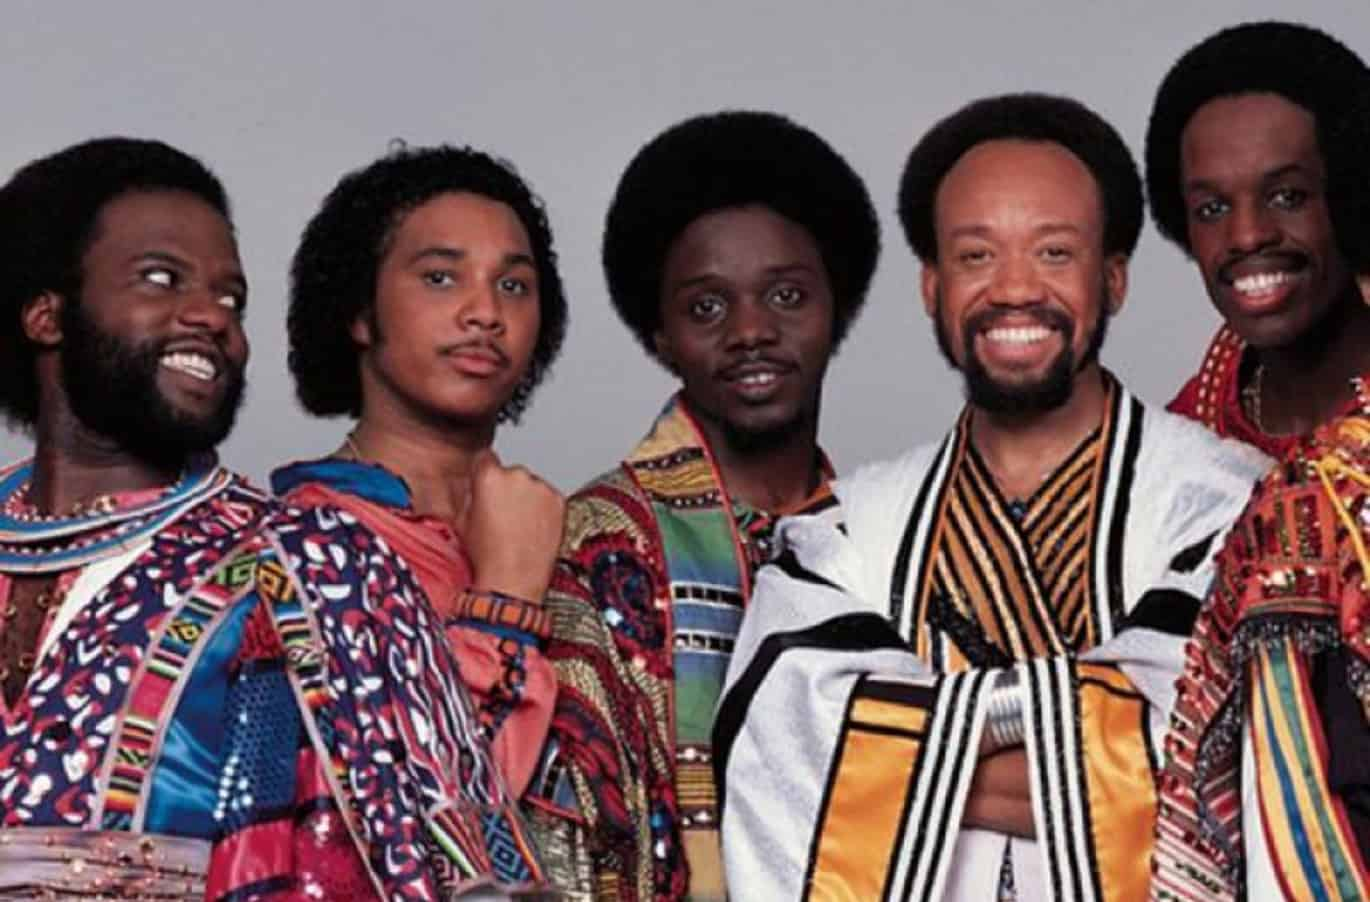 Greatest Hits (Earth Wind & Fire album)